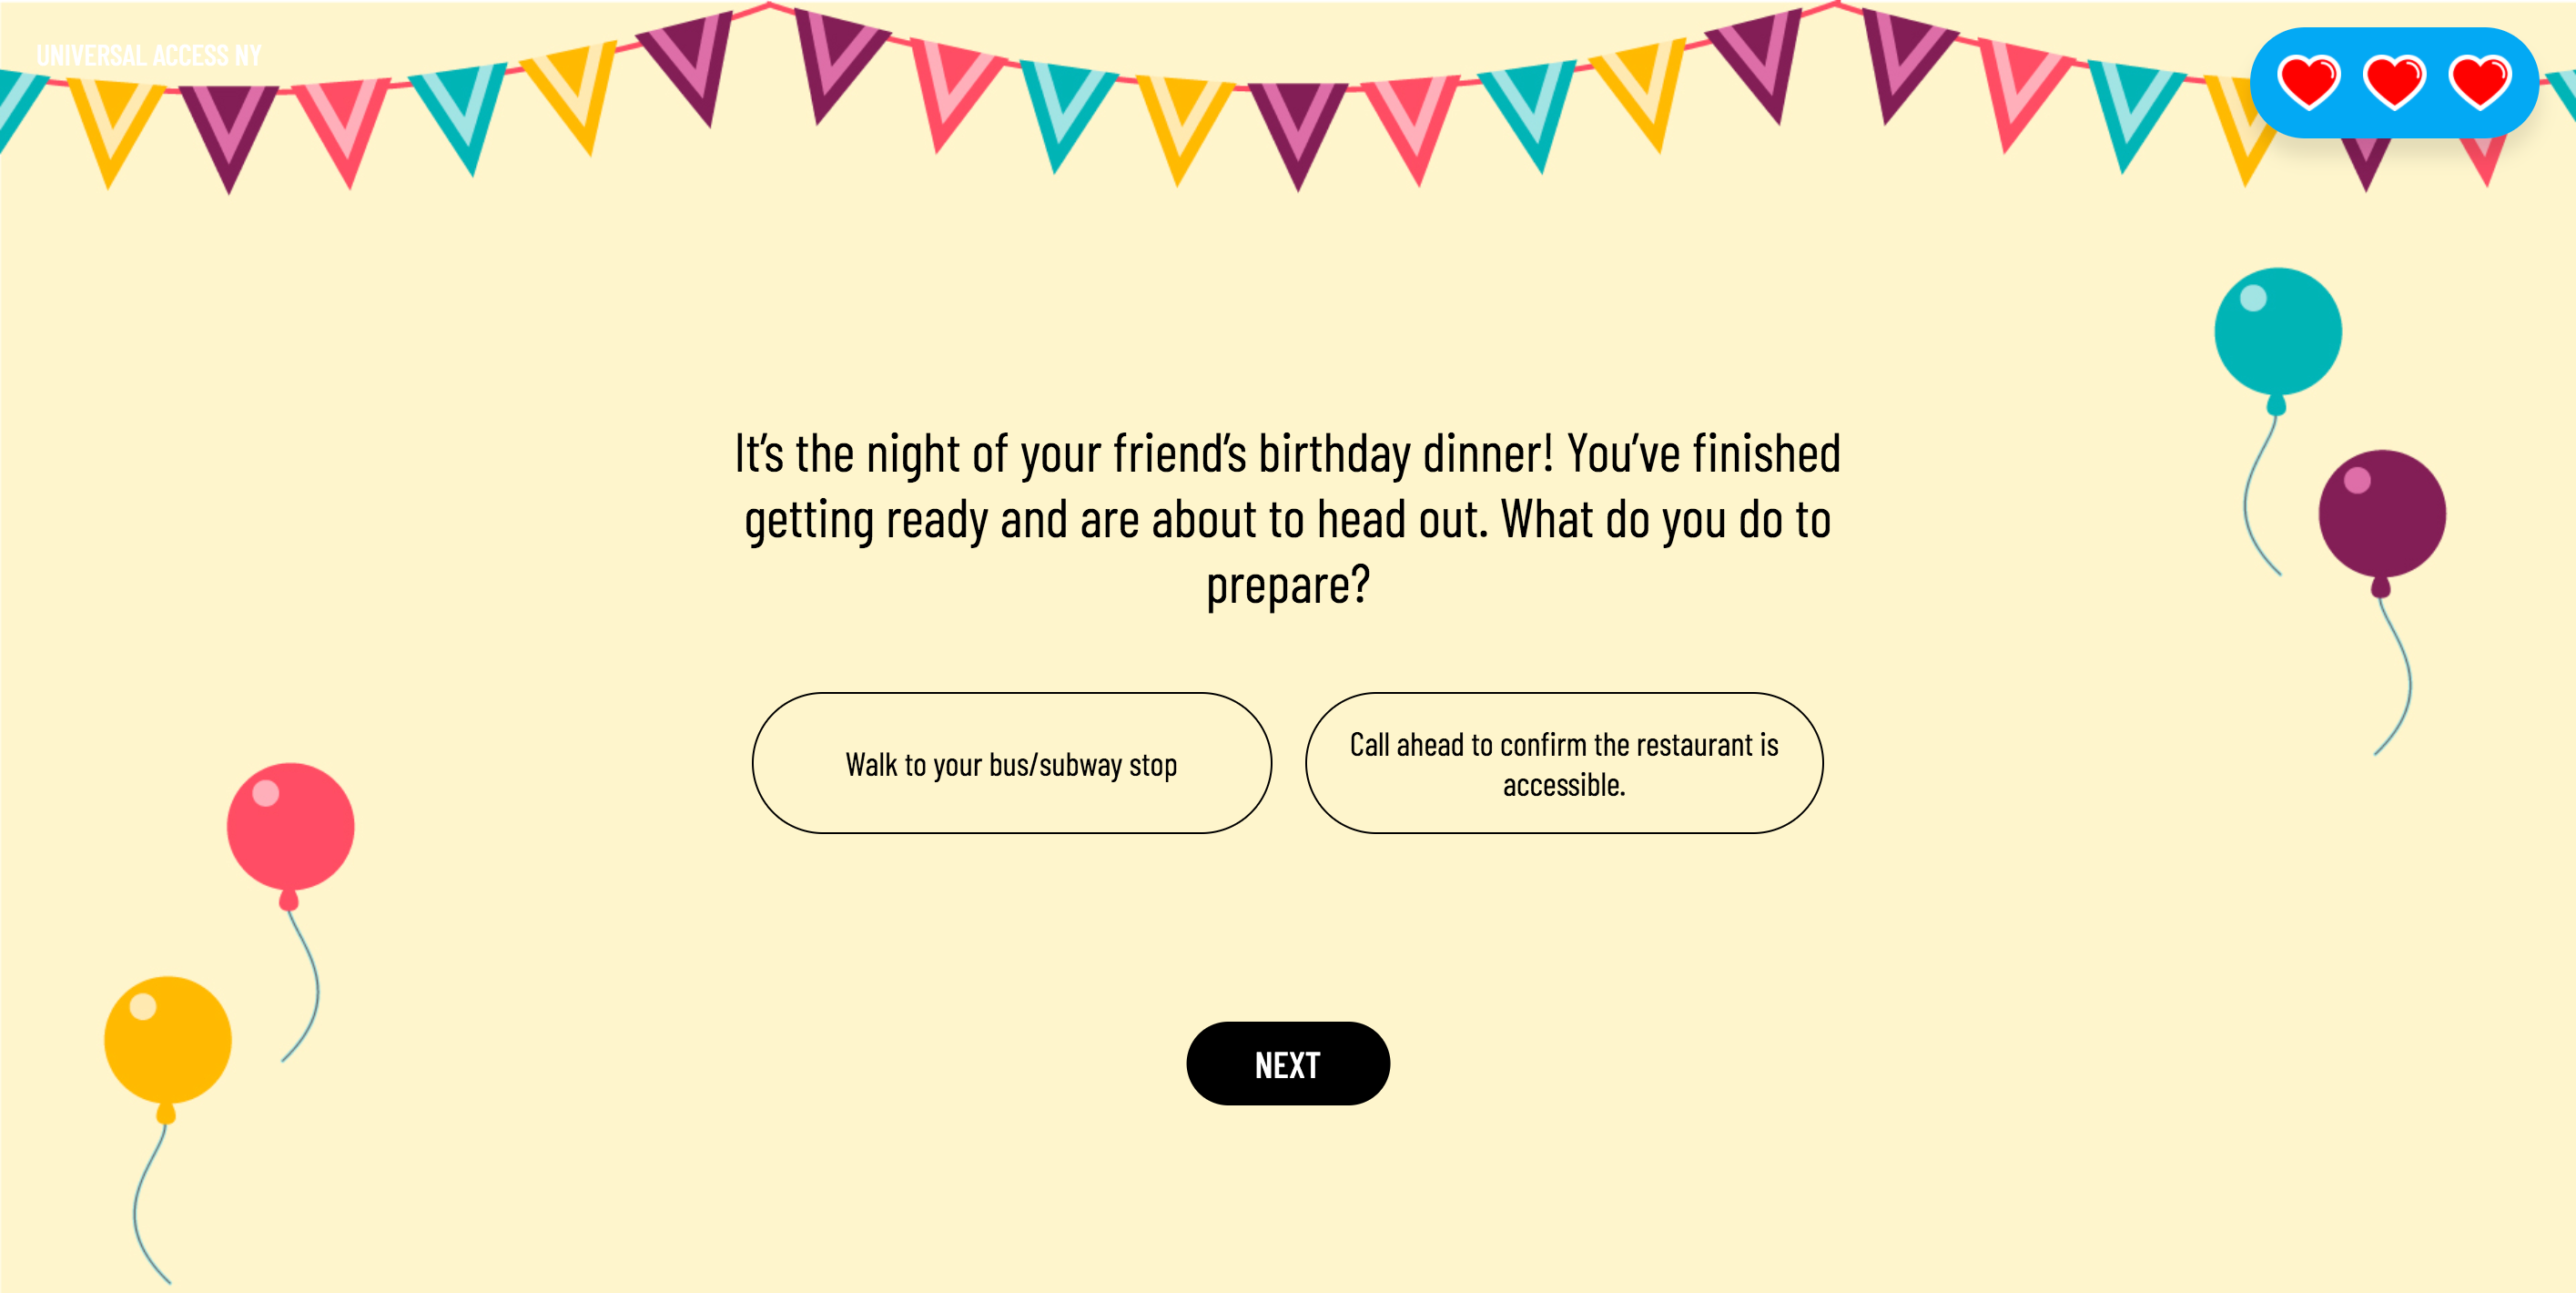 A question of the narrative game. The background yellow with multicolored triangle banners and balloons.